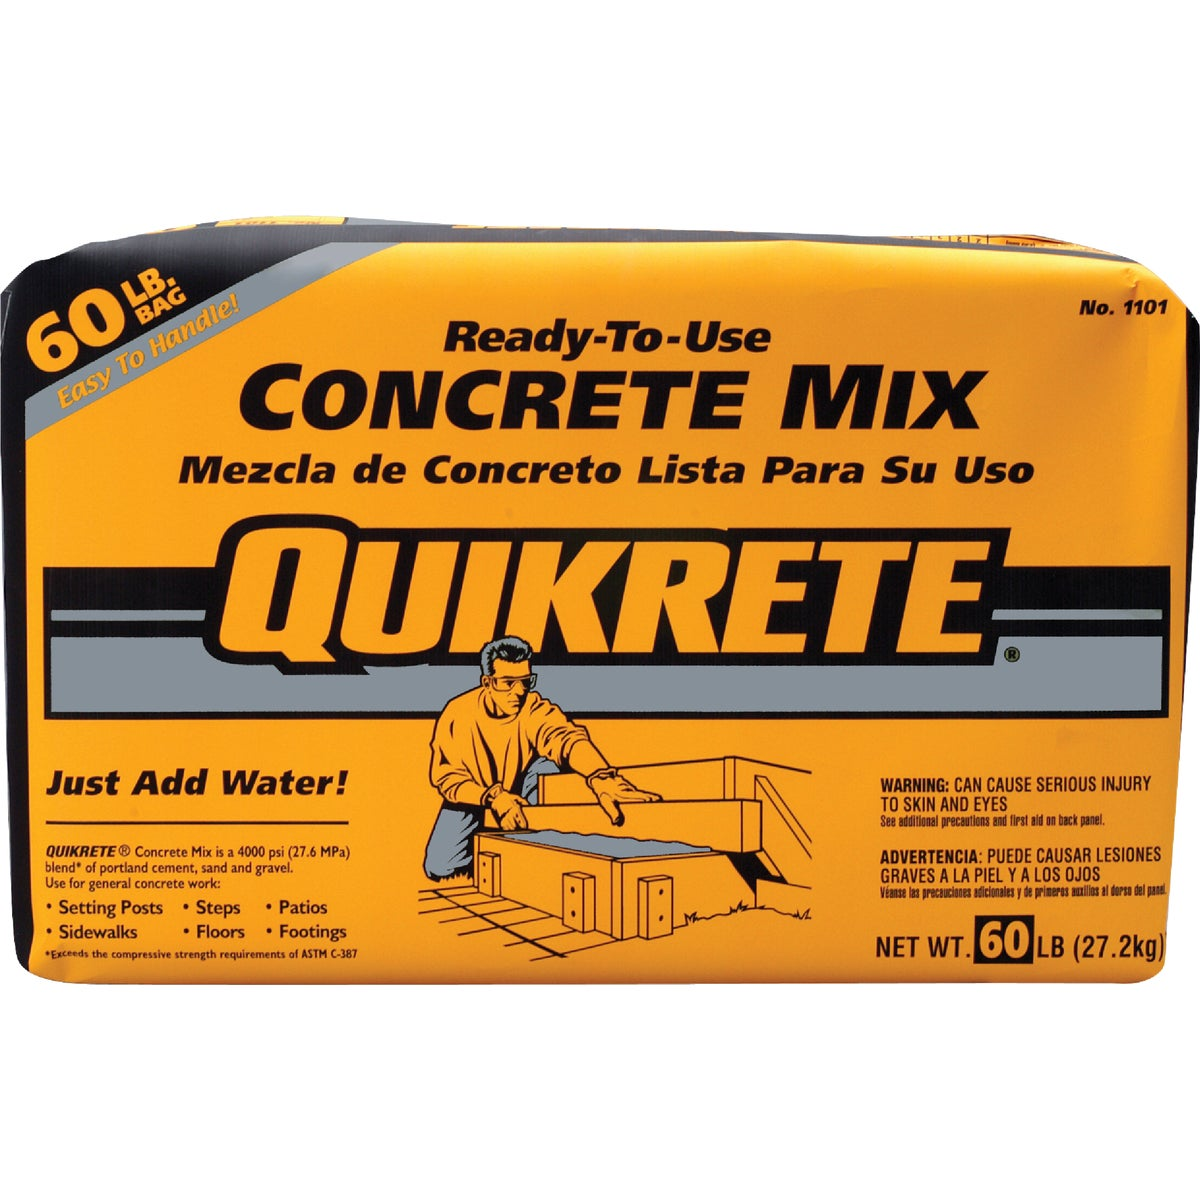 60LB CONCRETE MIX - 110160 by Quikrete Co